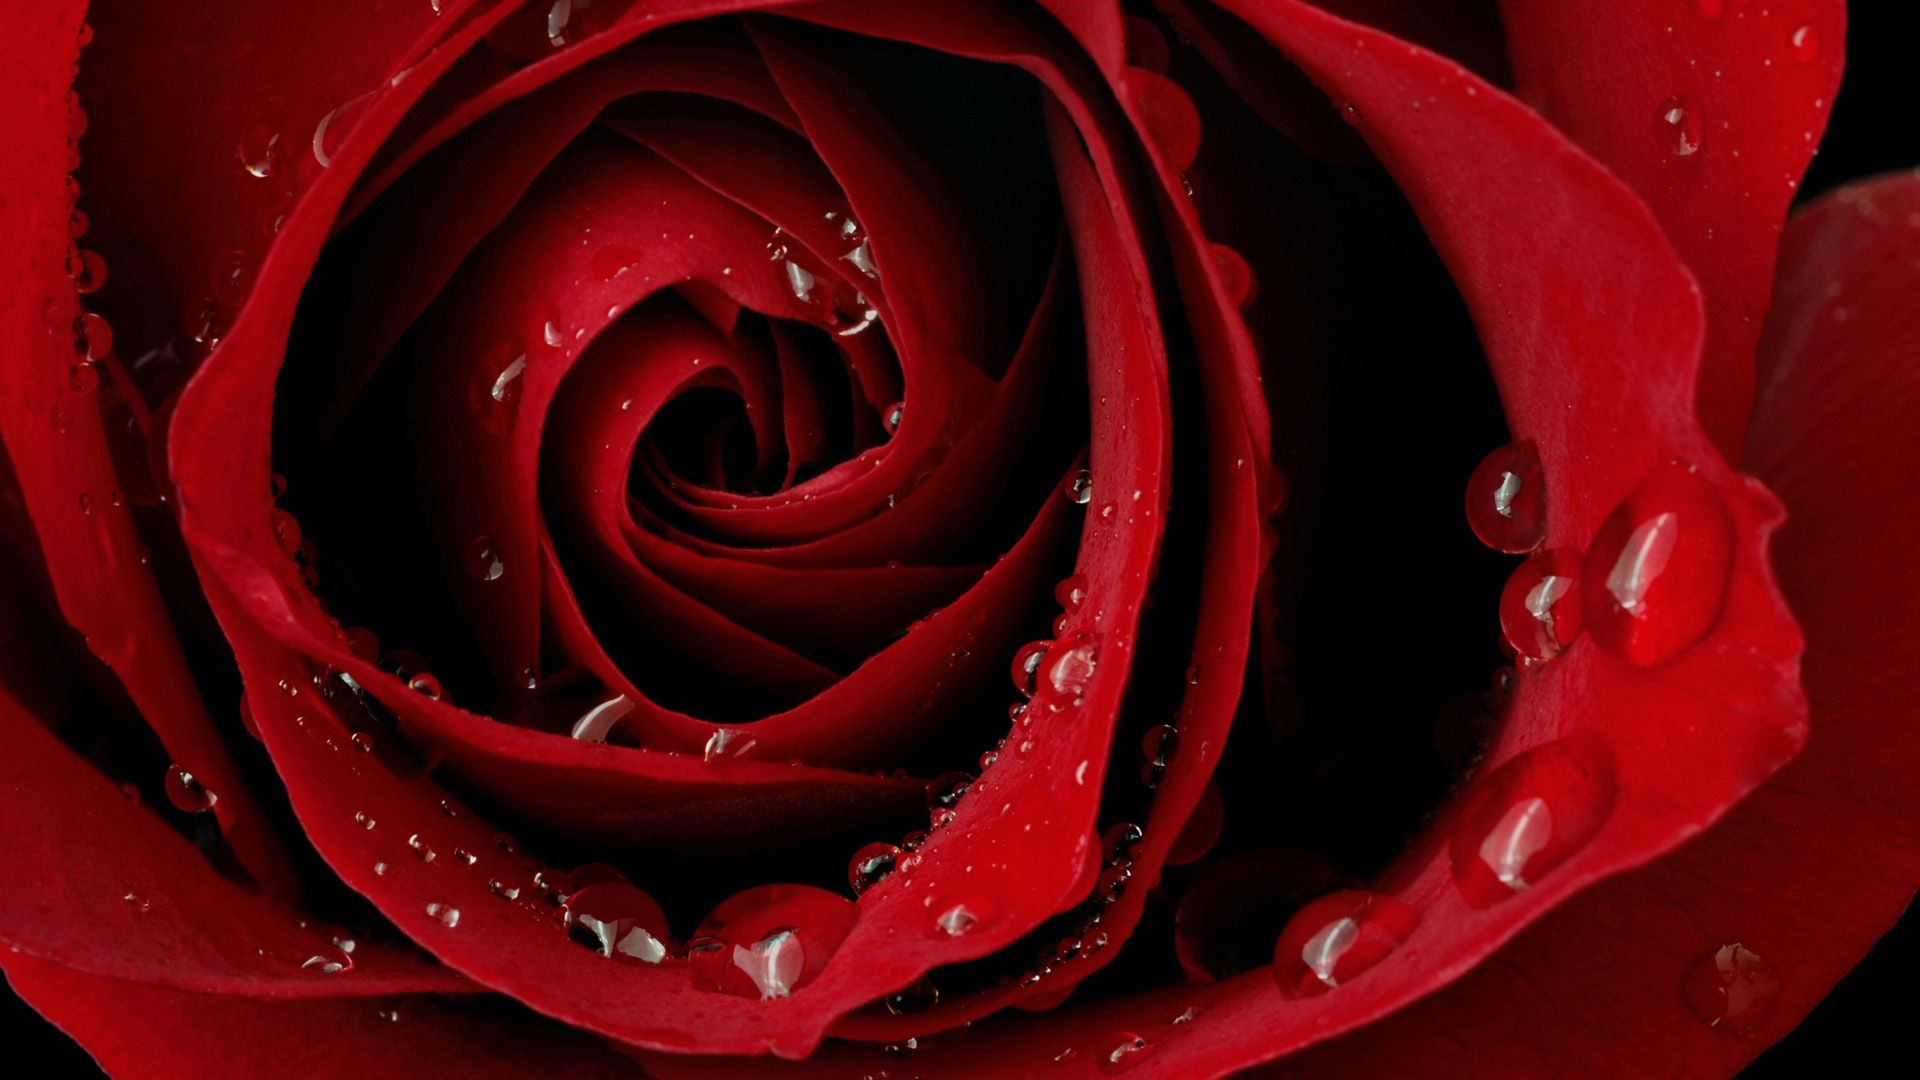 Rose Hd Full Screen 2 Wallpaper Rose Wallpaper Red Roses